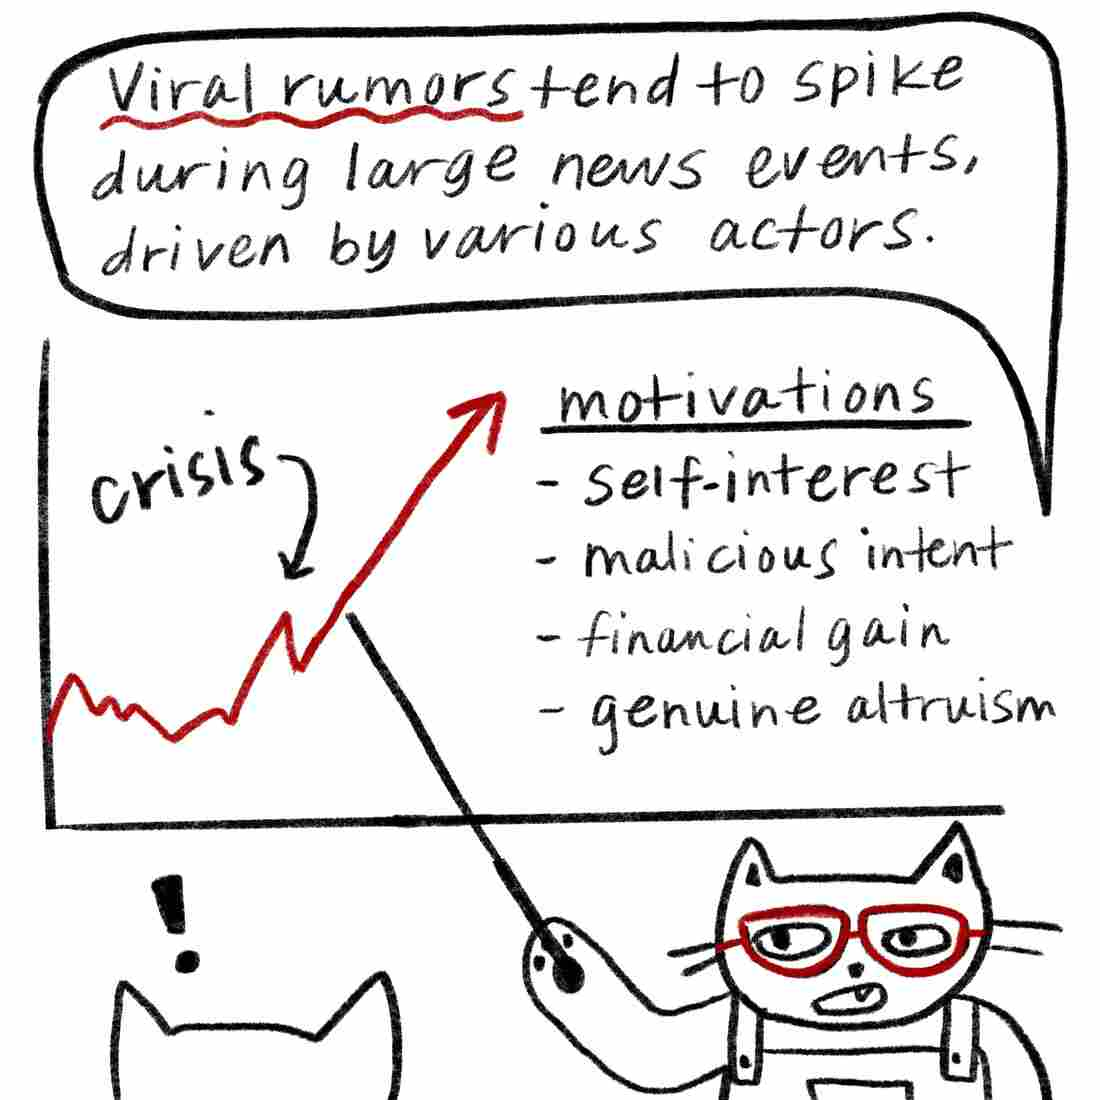 "Glasses cat speaking and pointing to charts on a whiteboard: ""Viral rumors tend to spike during large news events, driven by various actors. Their motivations could be self-interest, malicious intent, financial gain or genuine altruism."""